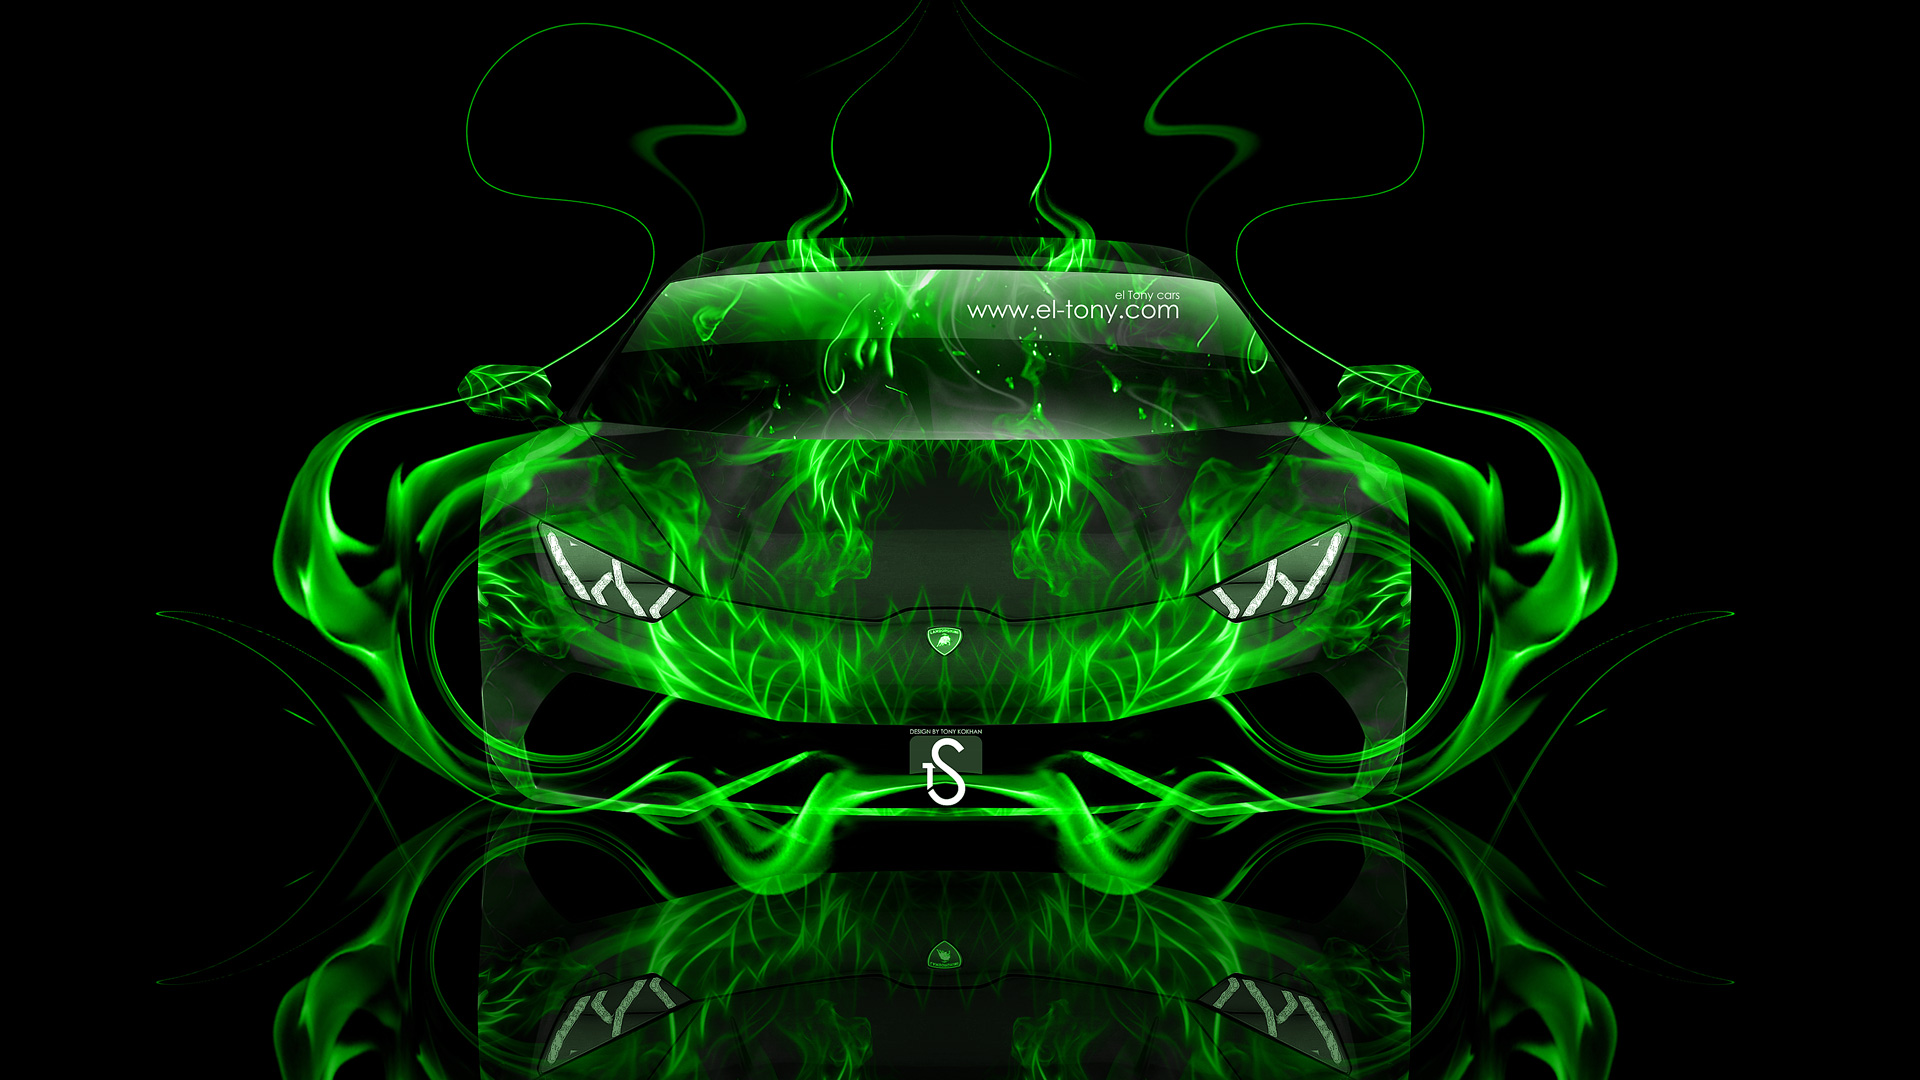 Lamborghini Huracan Green Fire Abstract Car 2014 HD  ...